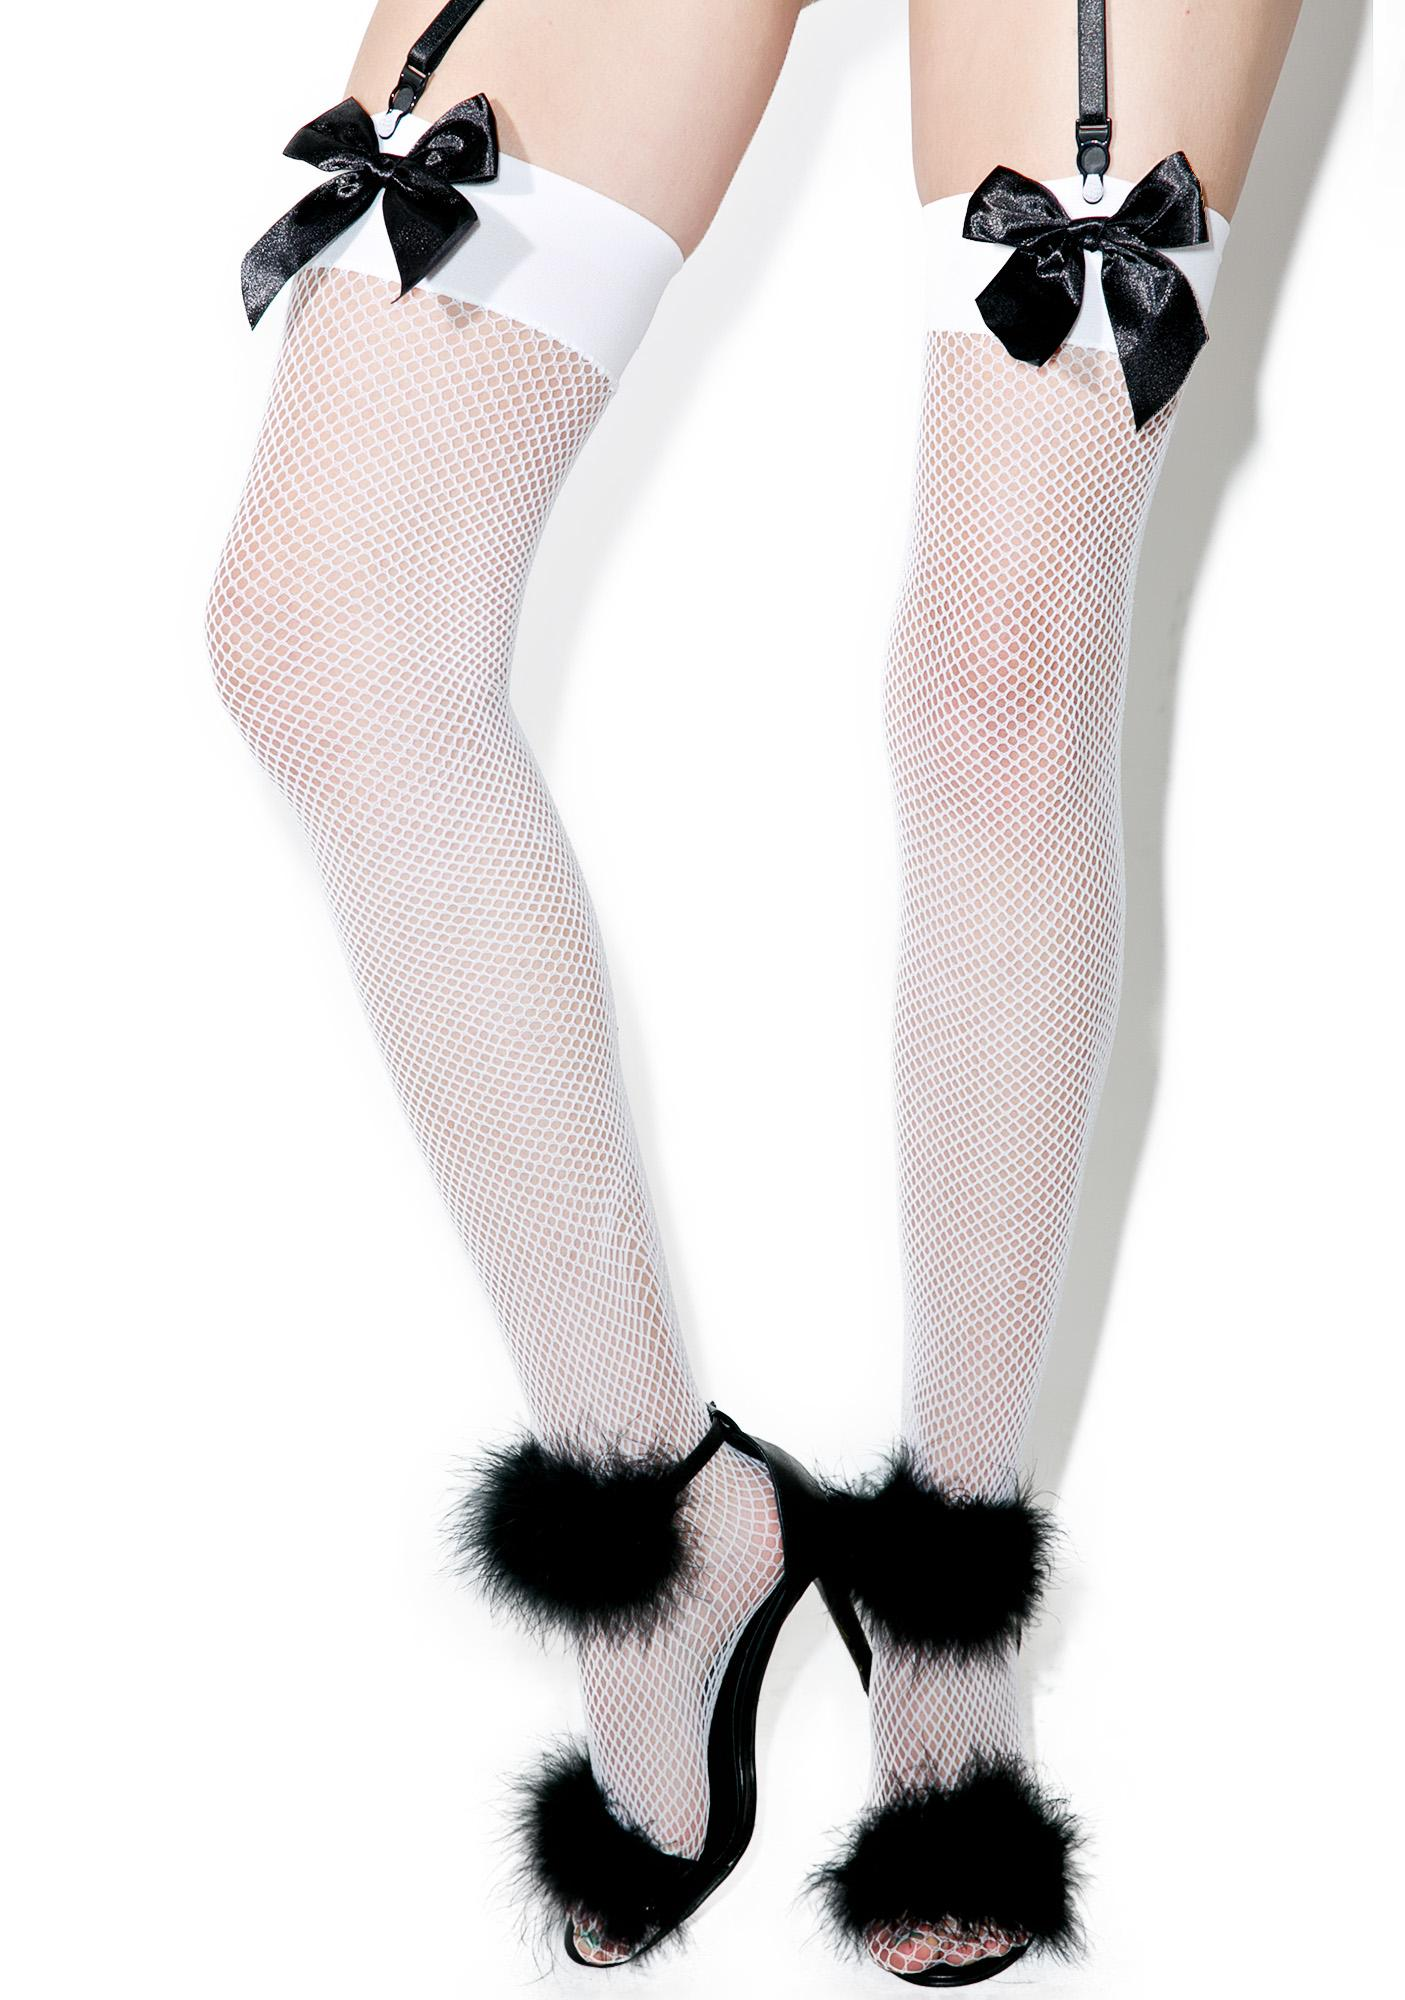 Oui Cherie Thigh Highs